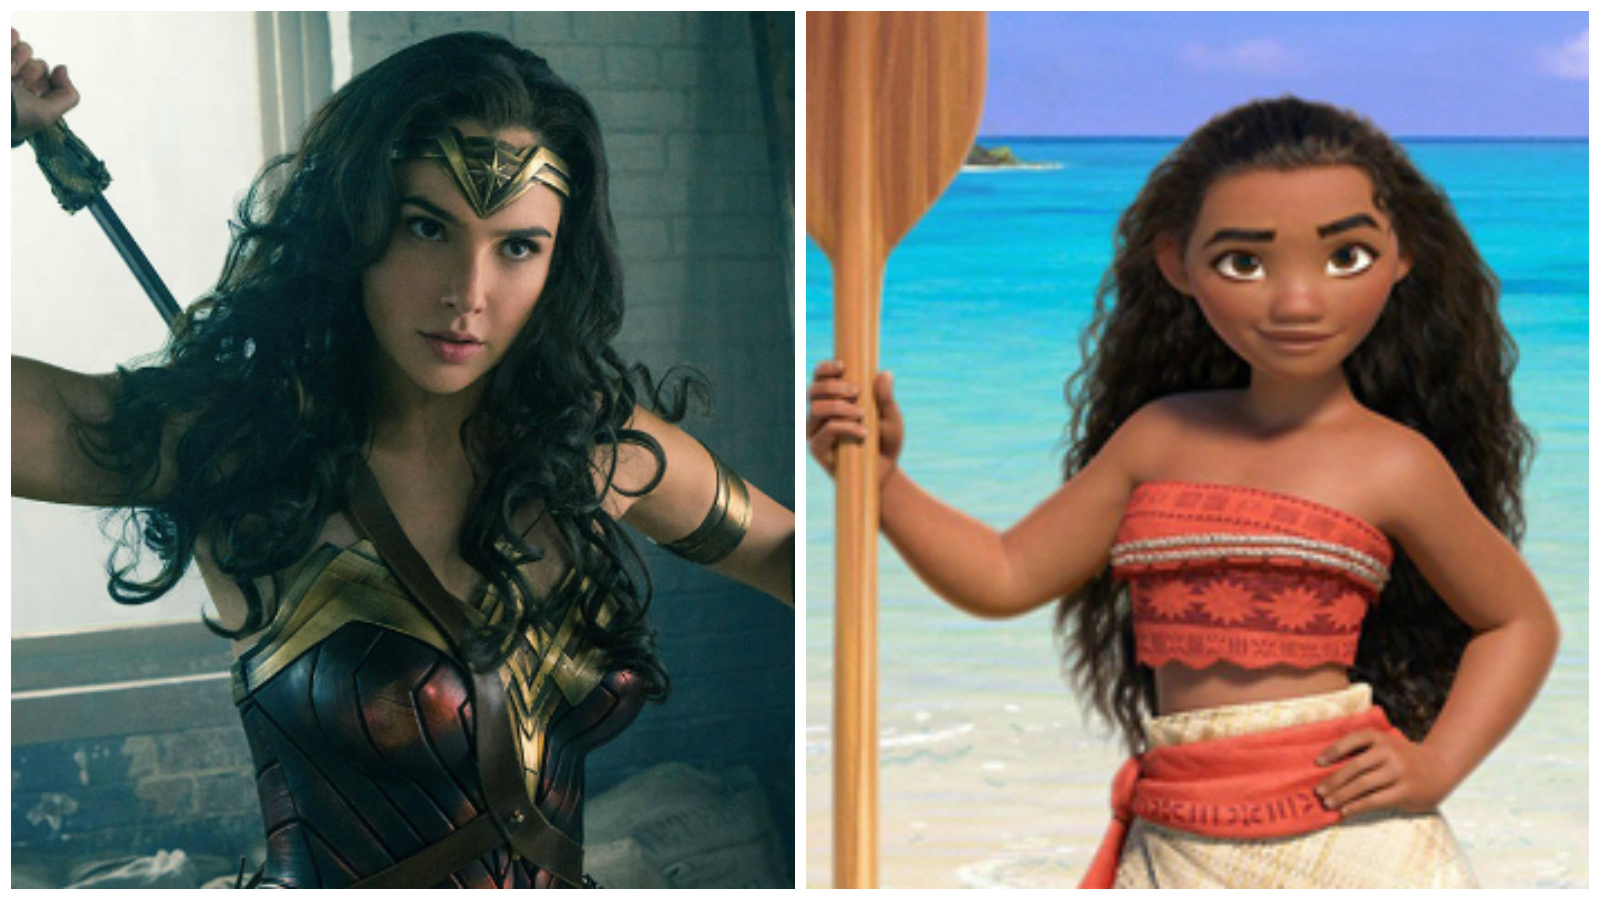 A Conspiracy Theory Wonder Woman And Moana Are The Same Person